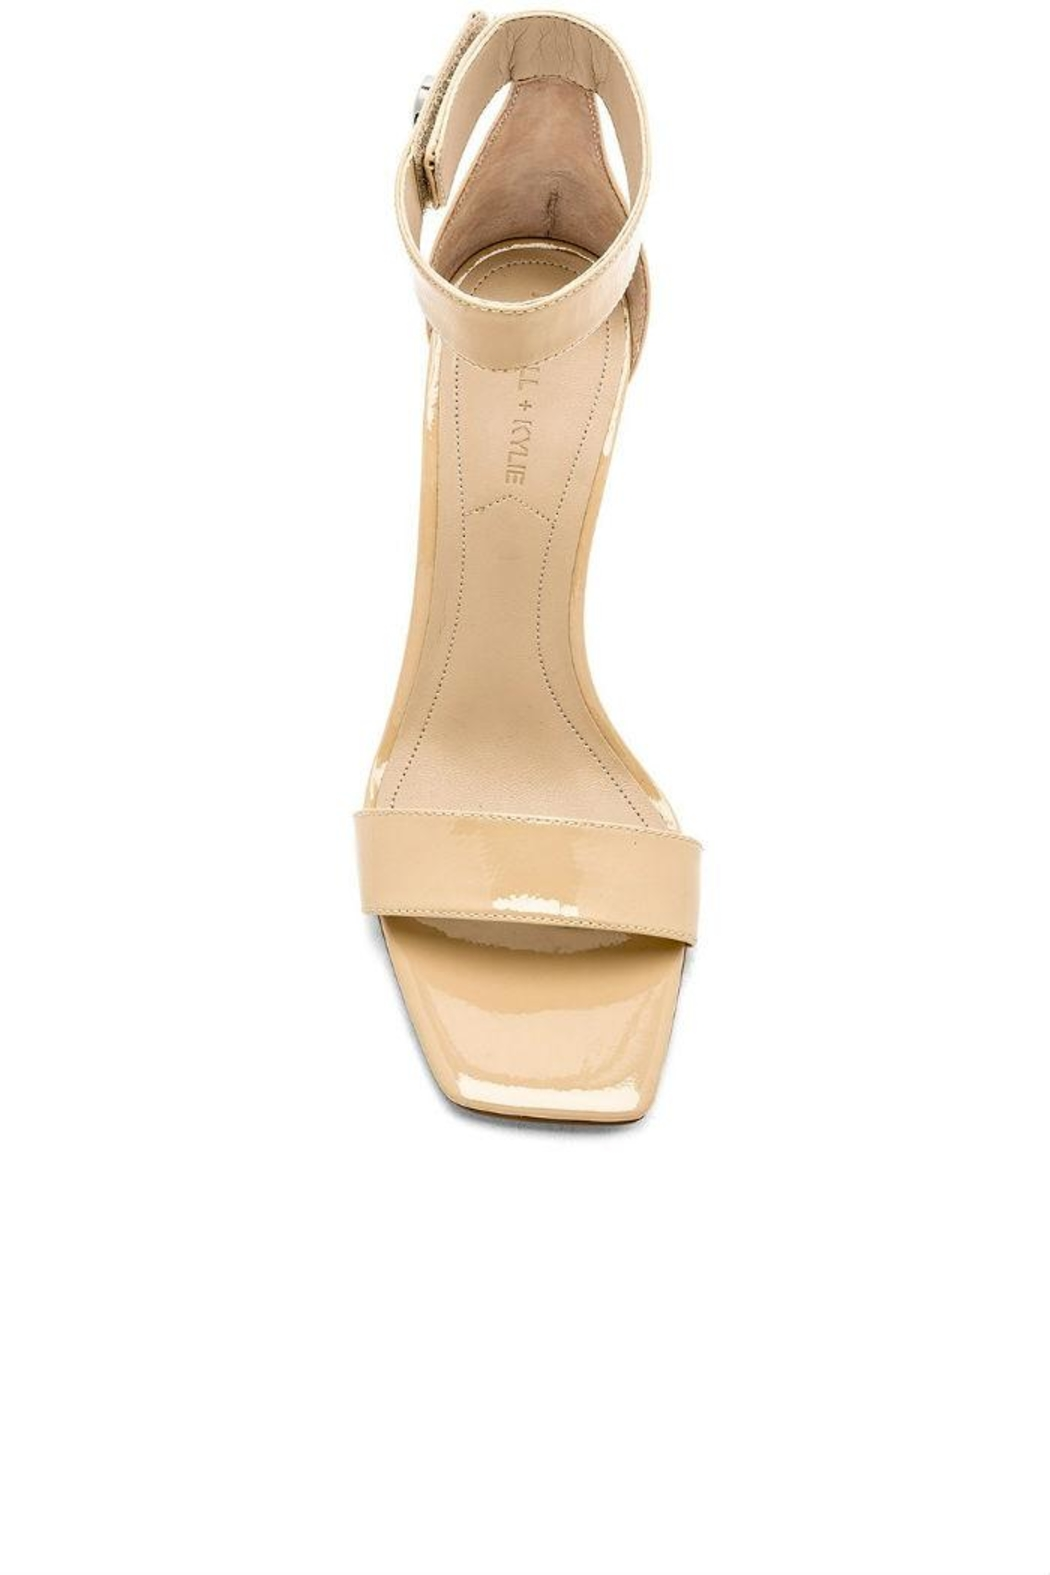 Kendall + Kylie Lexx Heel - Back Cropped Image